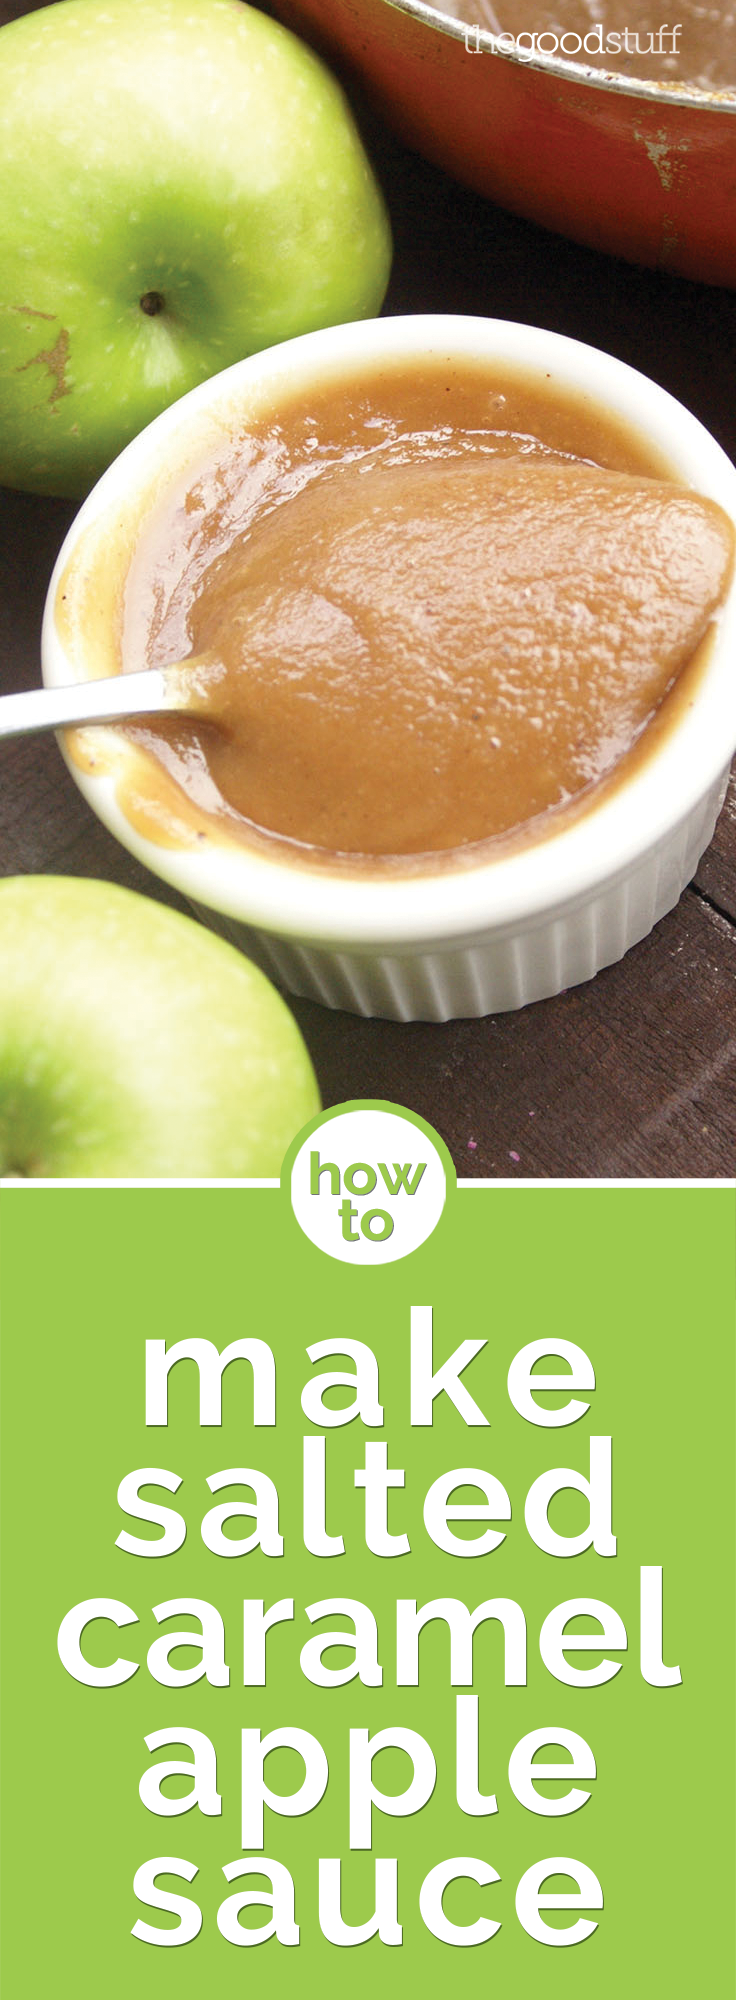 How To Make Homemade Caramel Sauce Recipe — Dishmaps